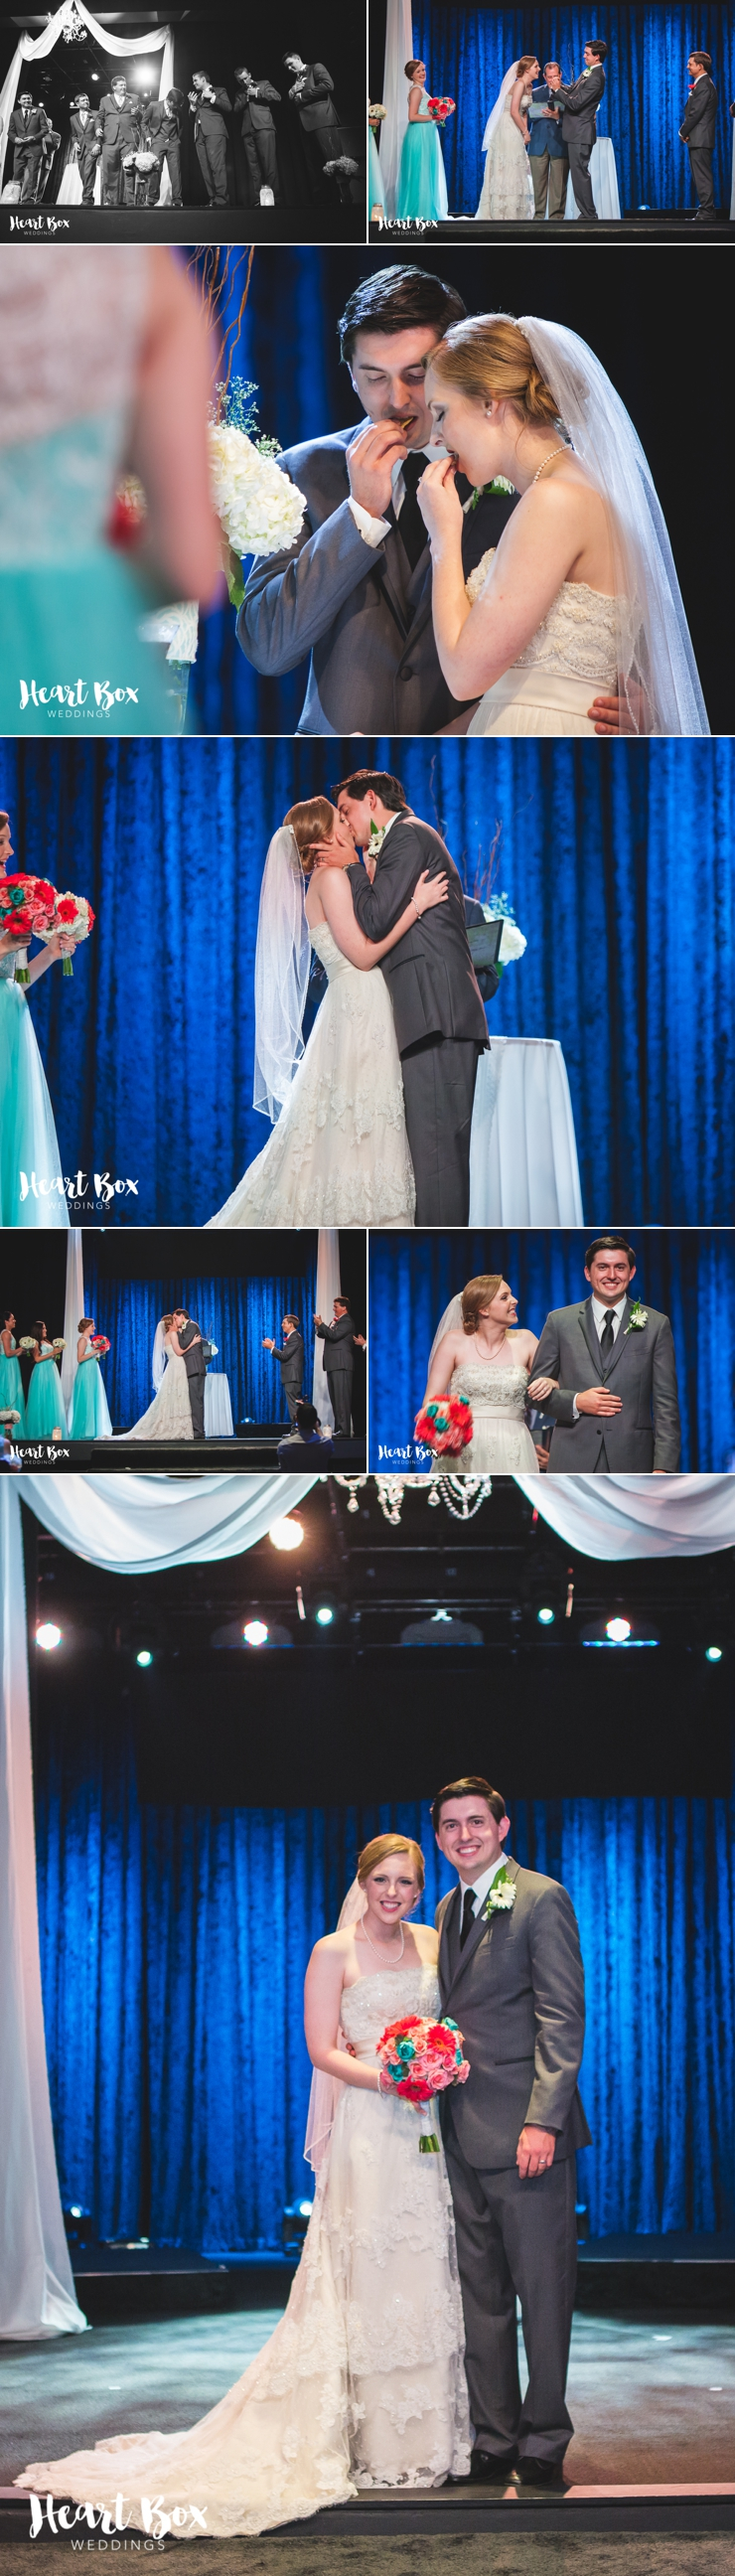 Jewell Wedding Blog Collages 13.jpg